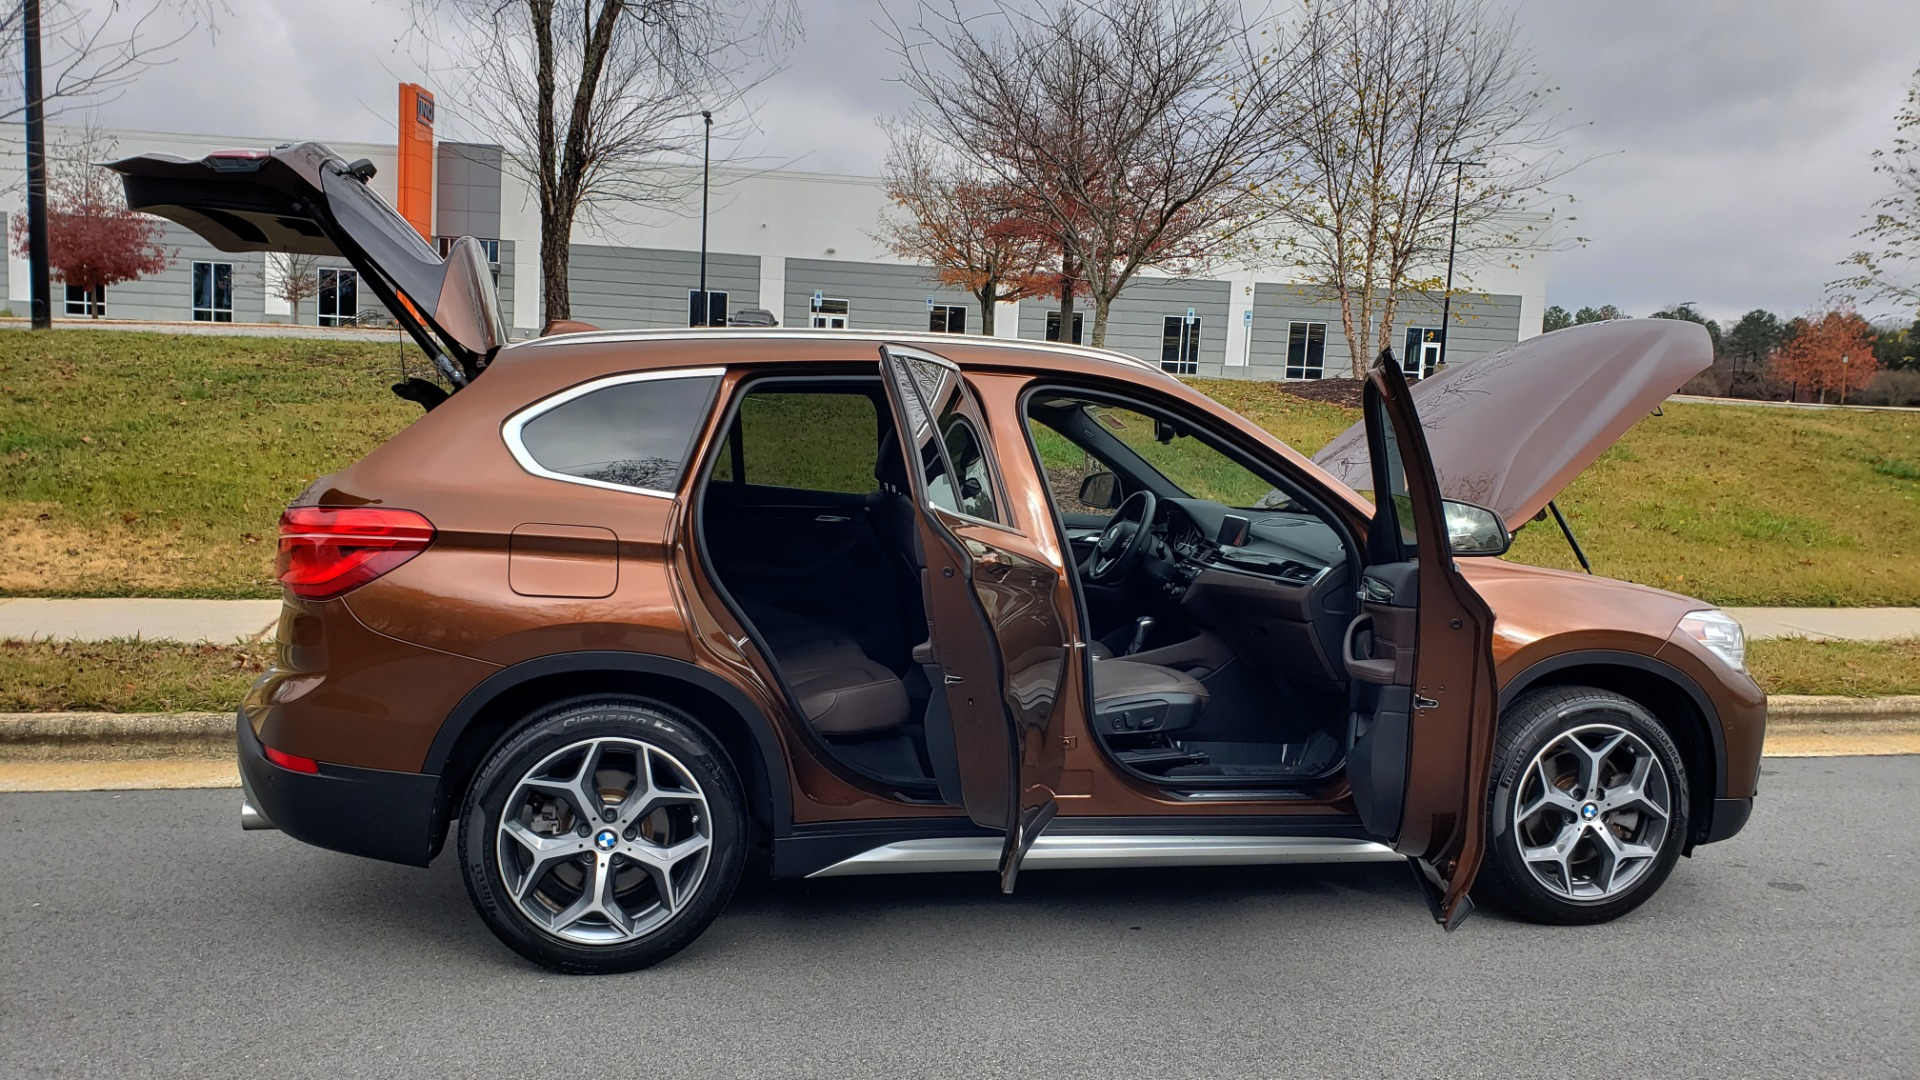 Used 2017 BMW X1 XDRIVE28I / PREM / TECH / DRVR ASST / COLD WTHR / REARVIEW for sale Sold at Formula Imports in Charlotte NC 28227 10